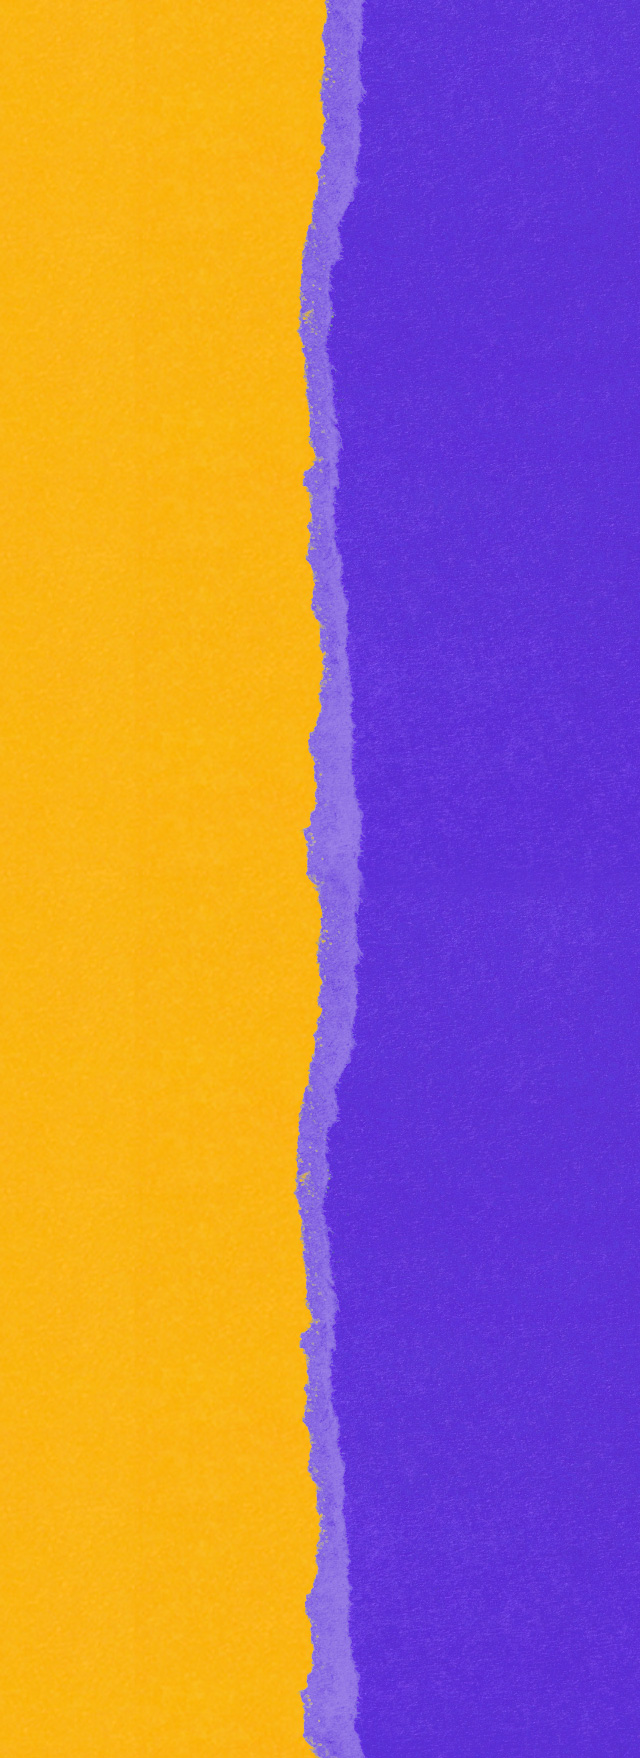 bg-paper-yellow-purple-mob